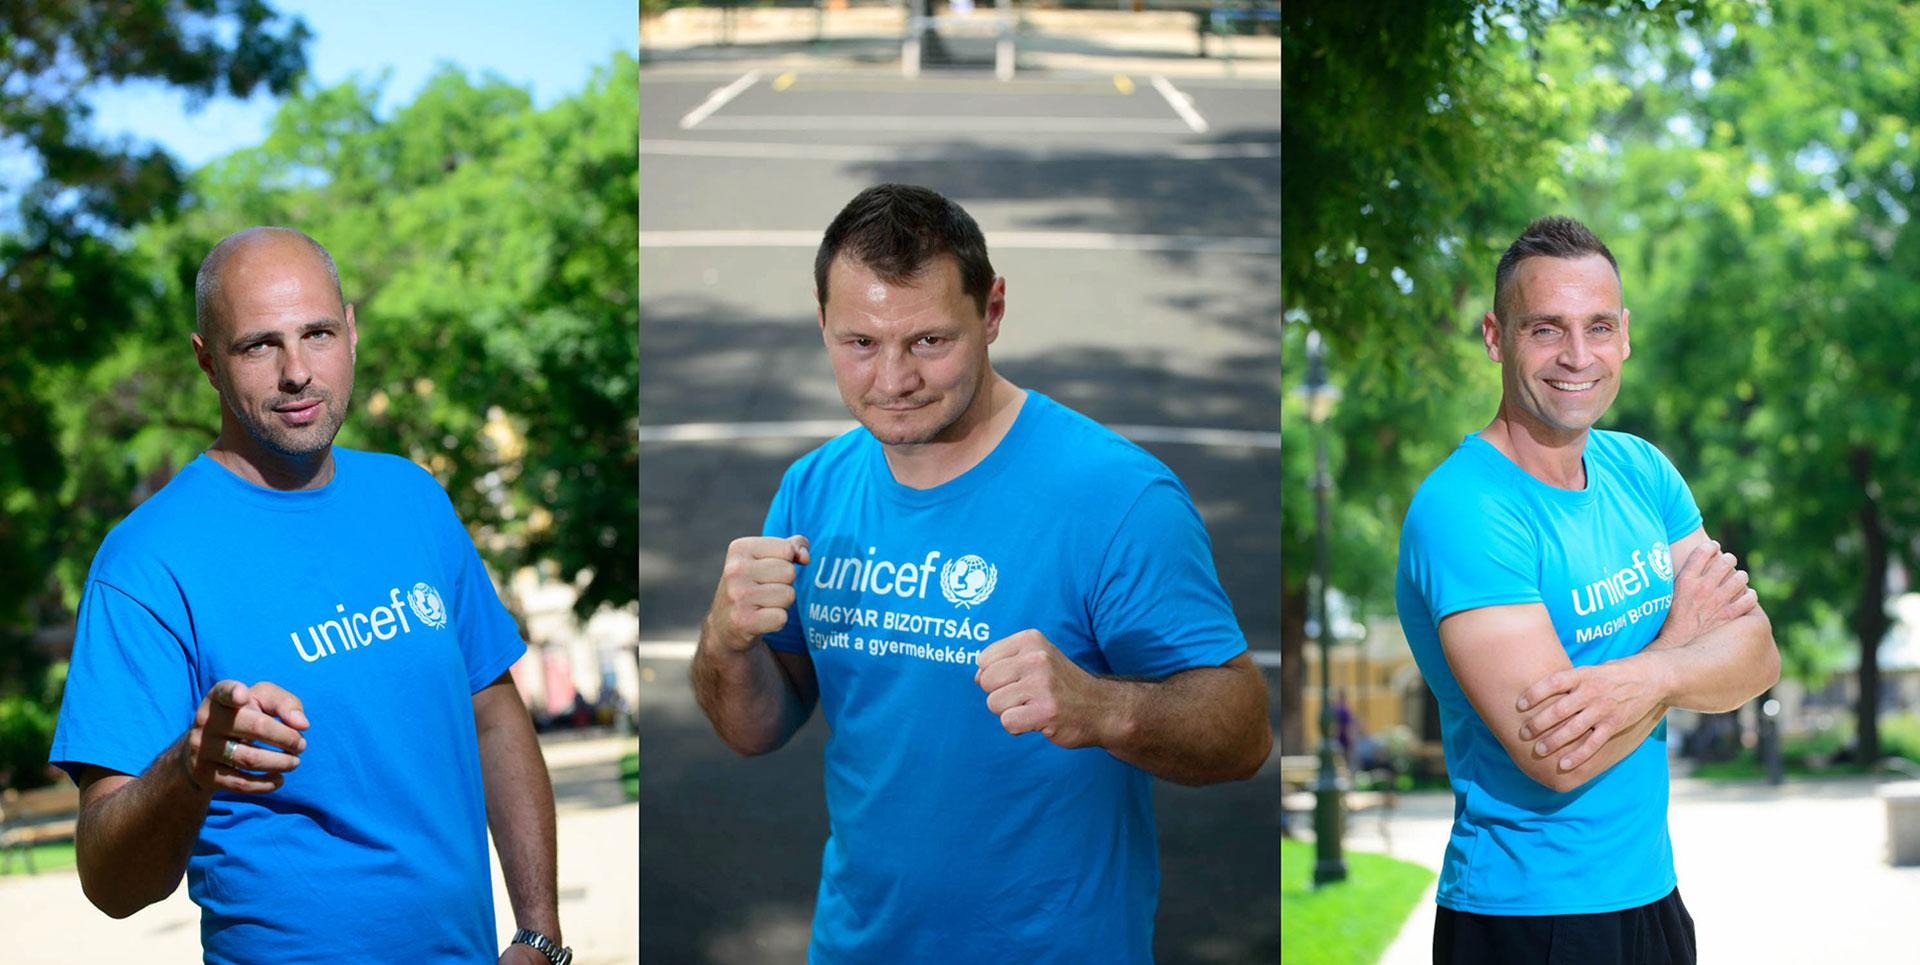 Join Team Unicef Budapest And Save Lives